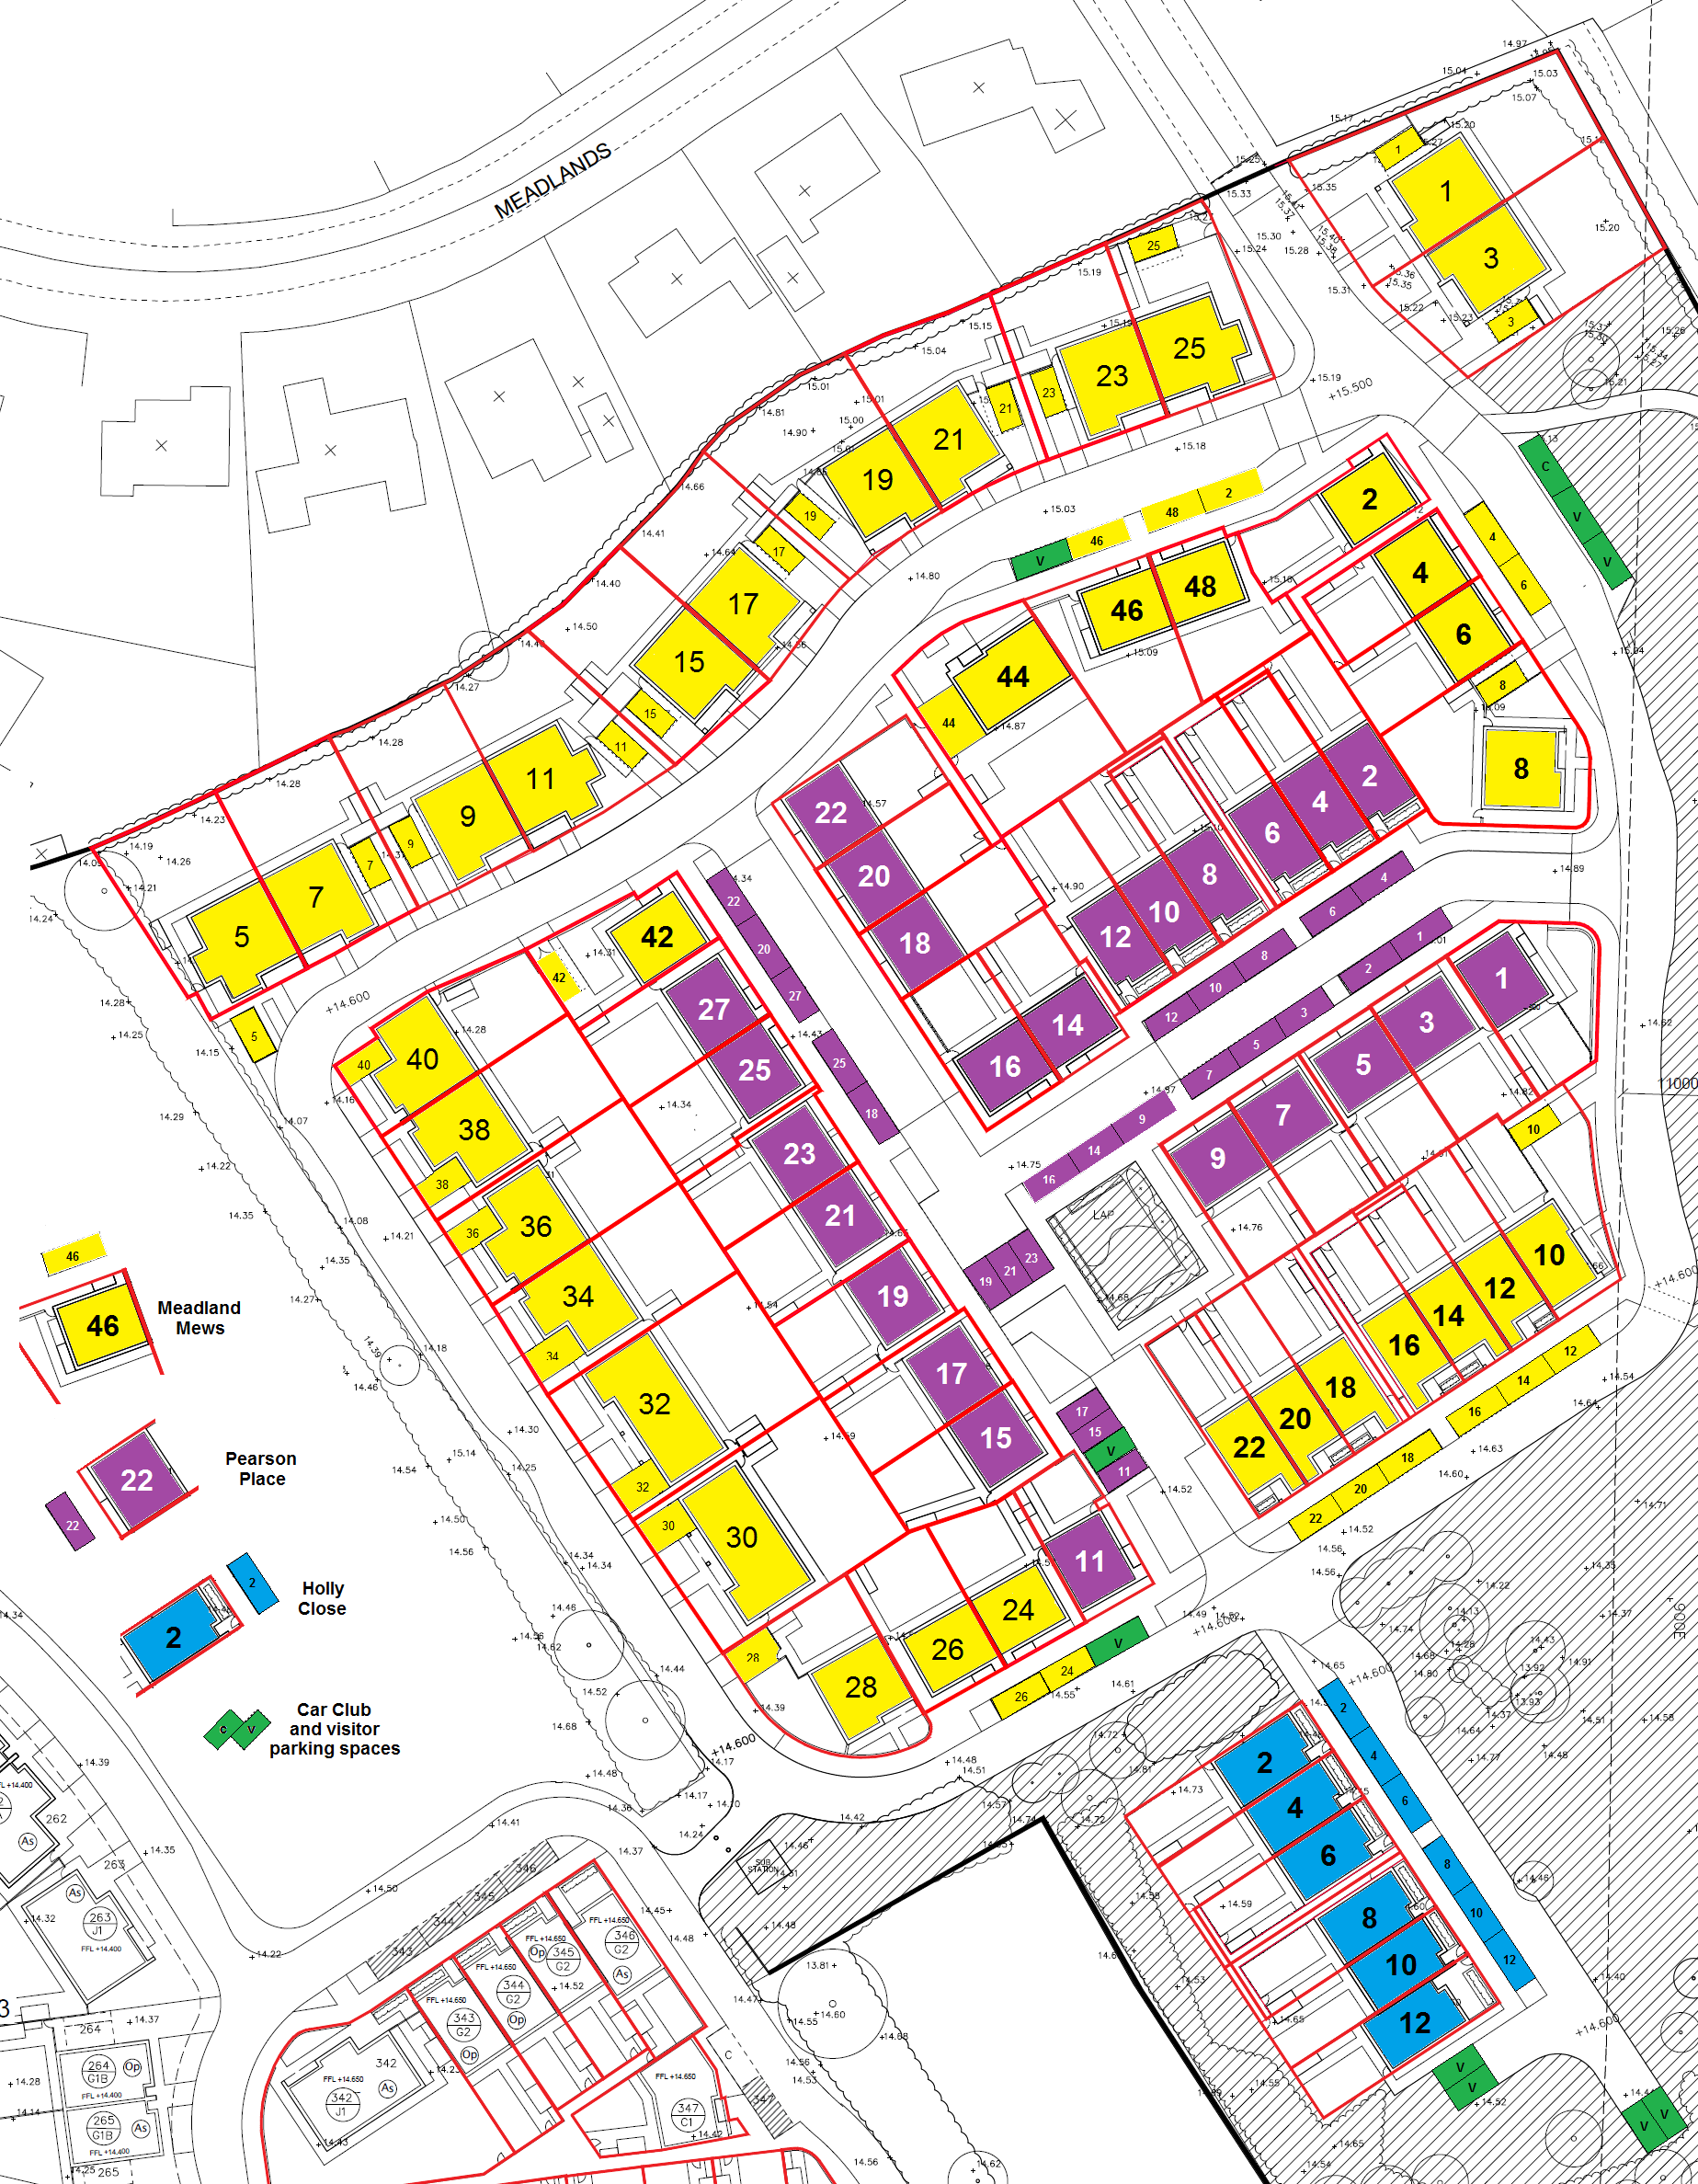 Map of Rowntree Quarter, showing car parking spaces.